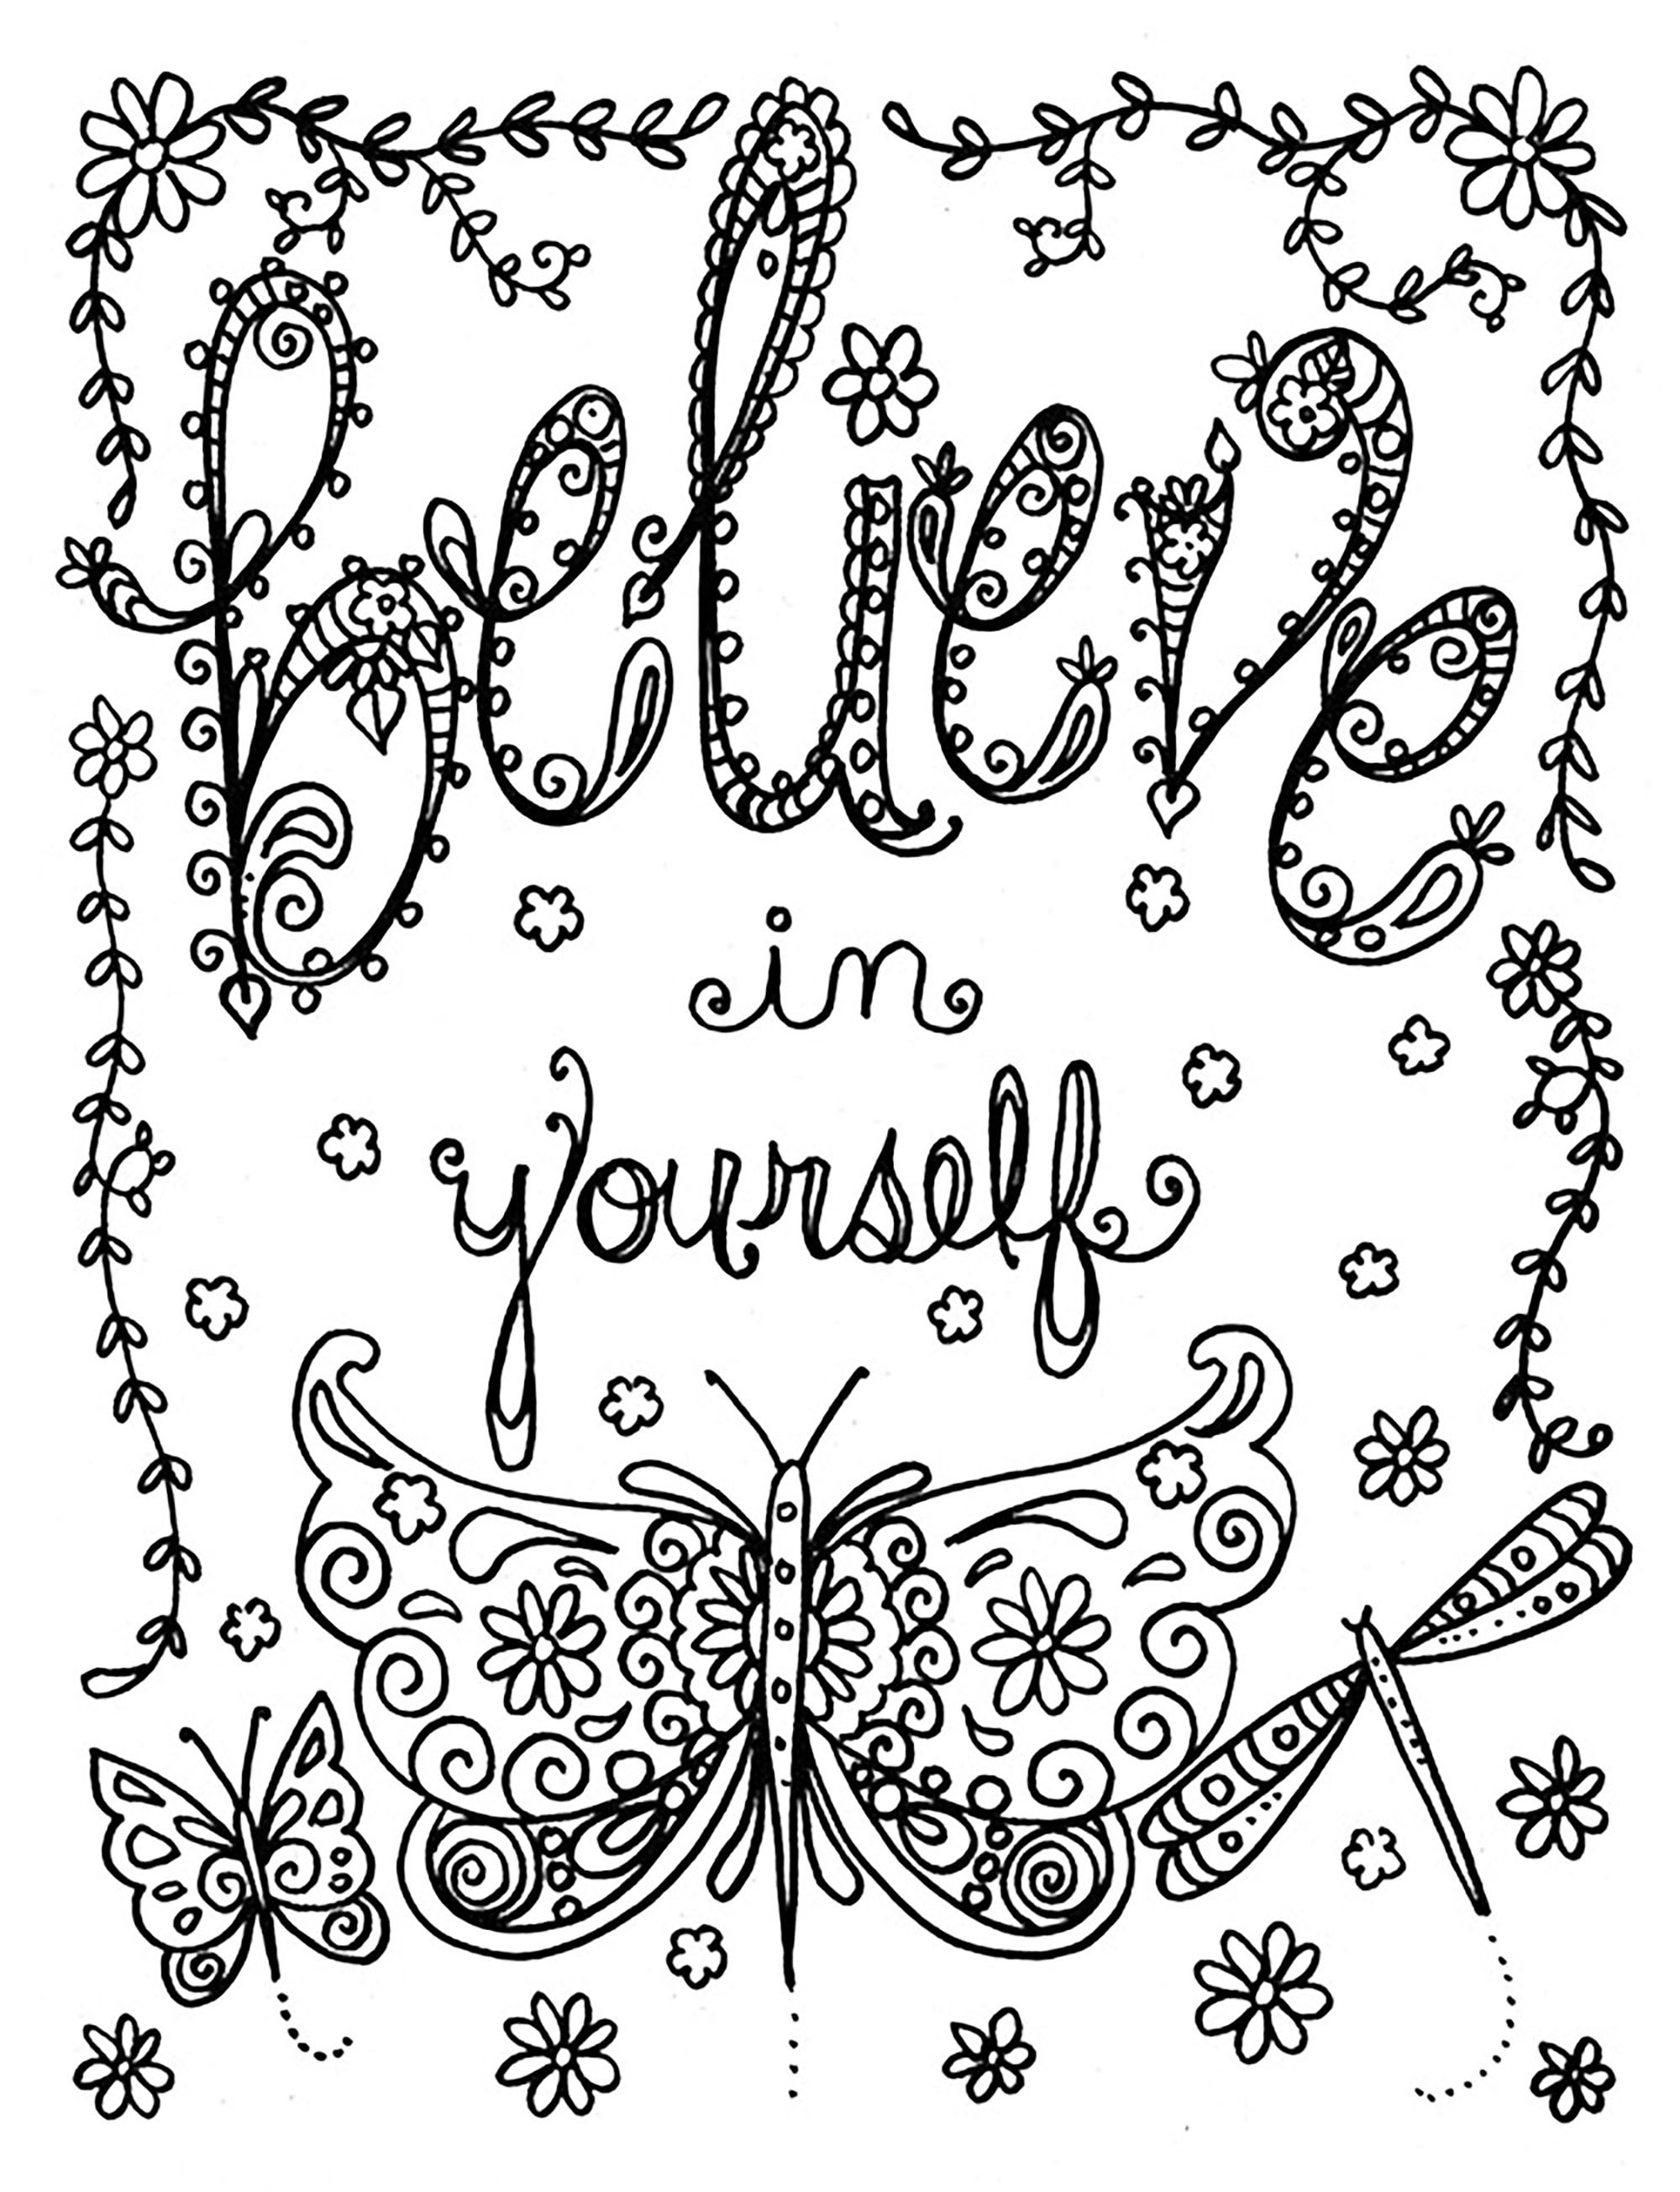 anxiety coloring pages - photo#14